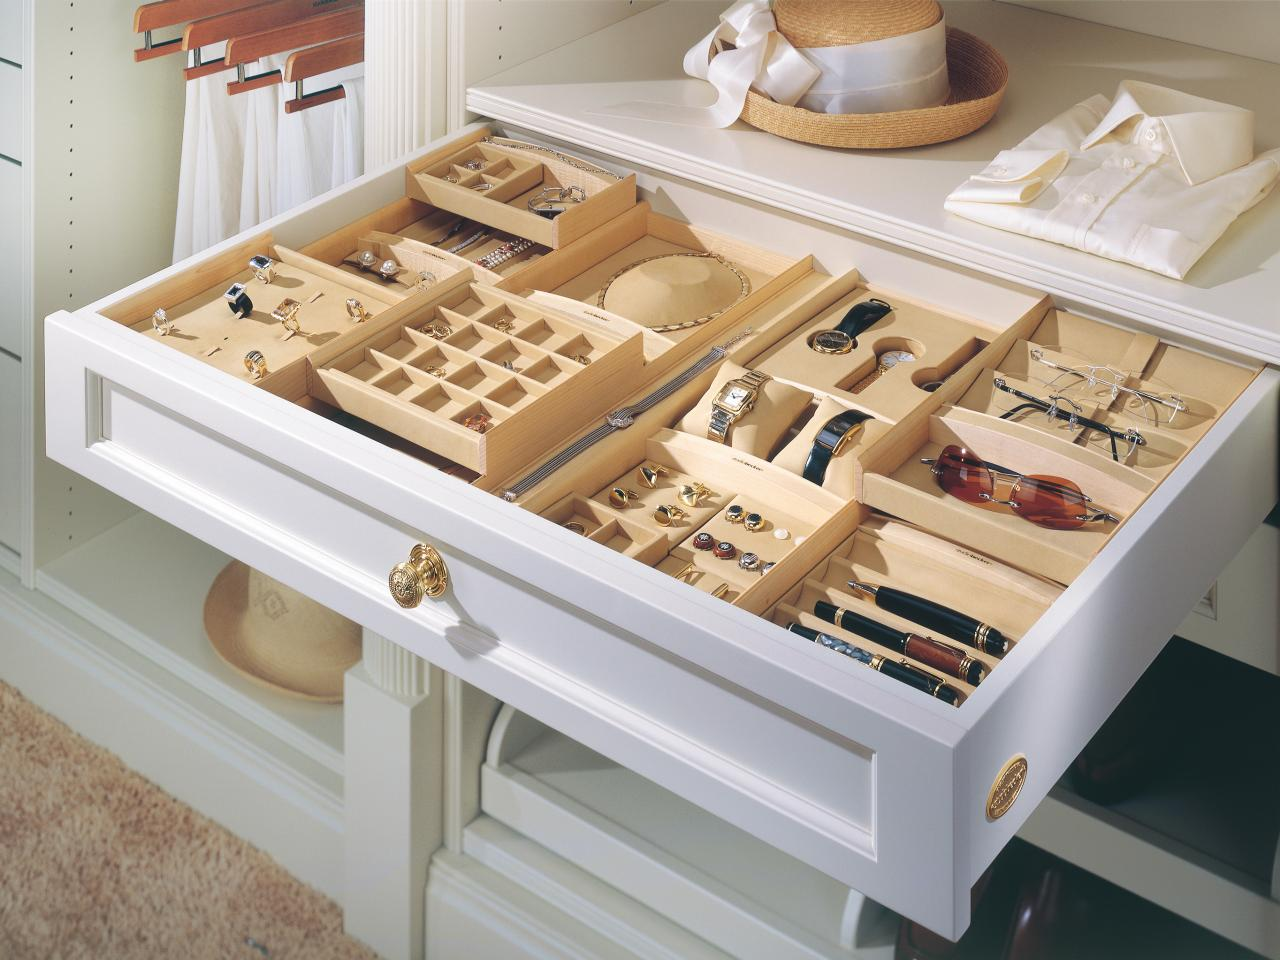 jewelry-drawers-how-to-organize-jewelry-closet-wardrobe-earrings-rings-necklaces-storage-trays.jpeg